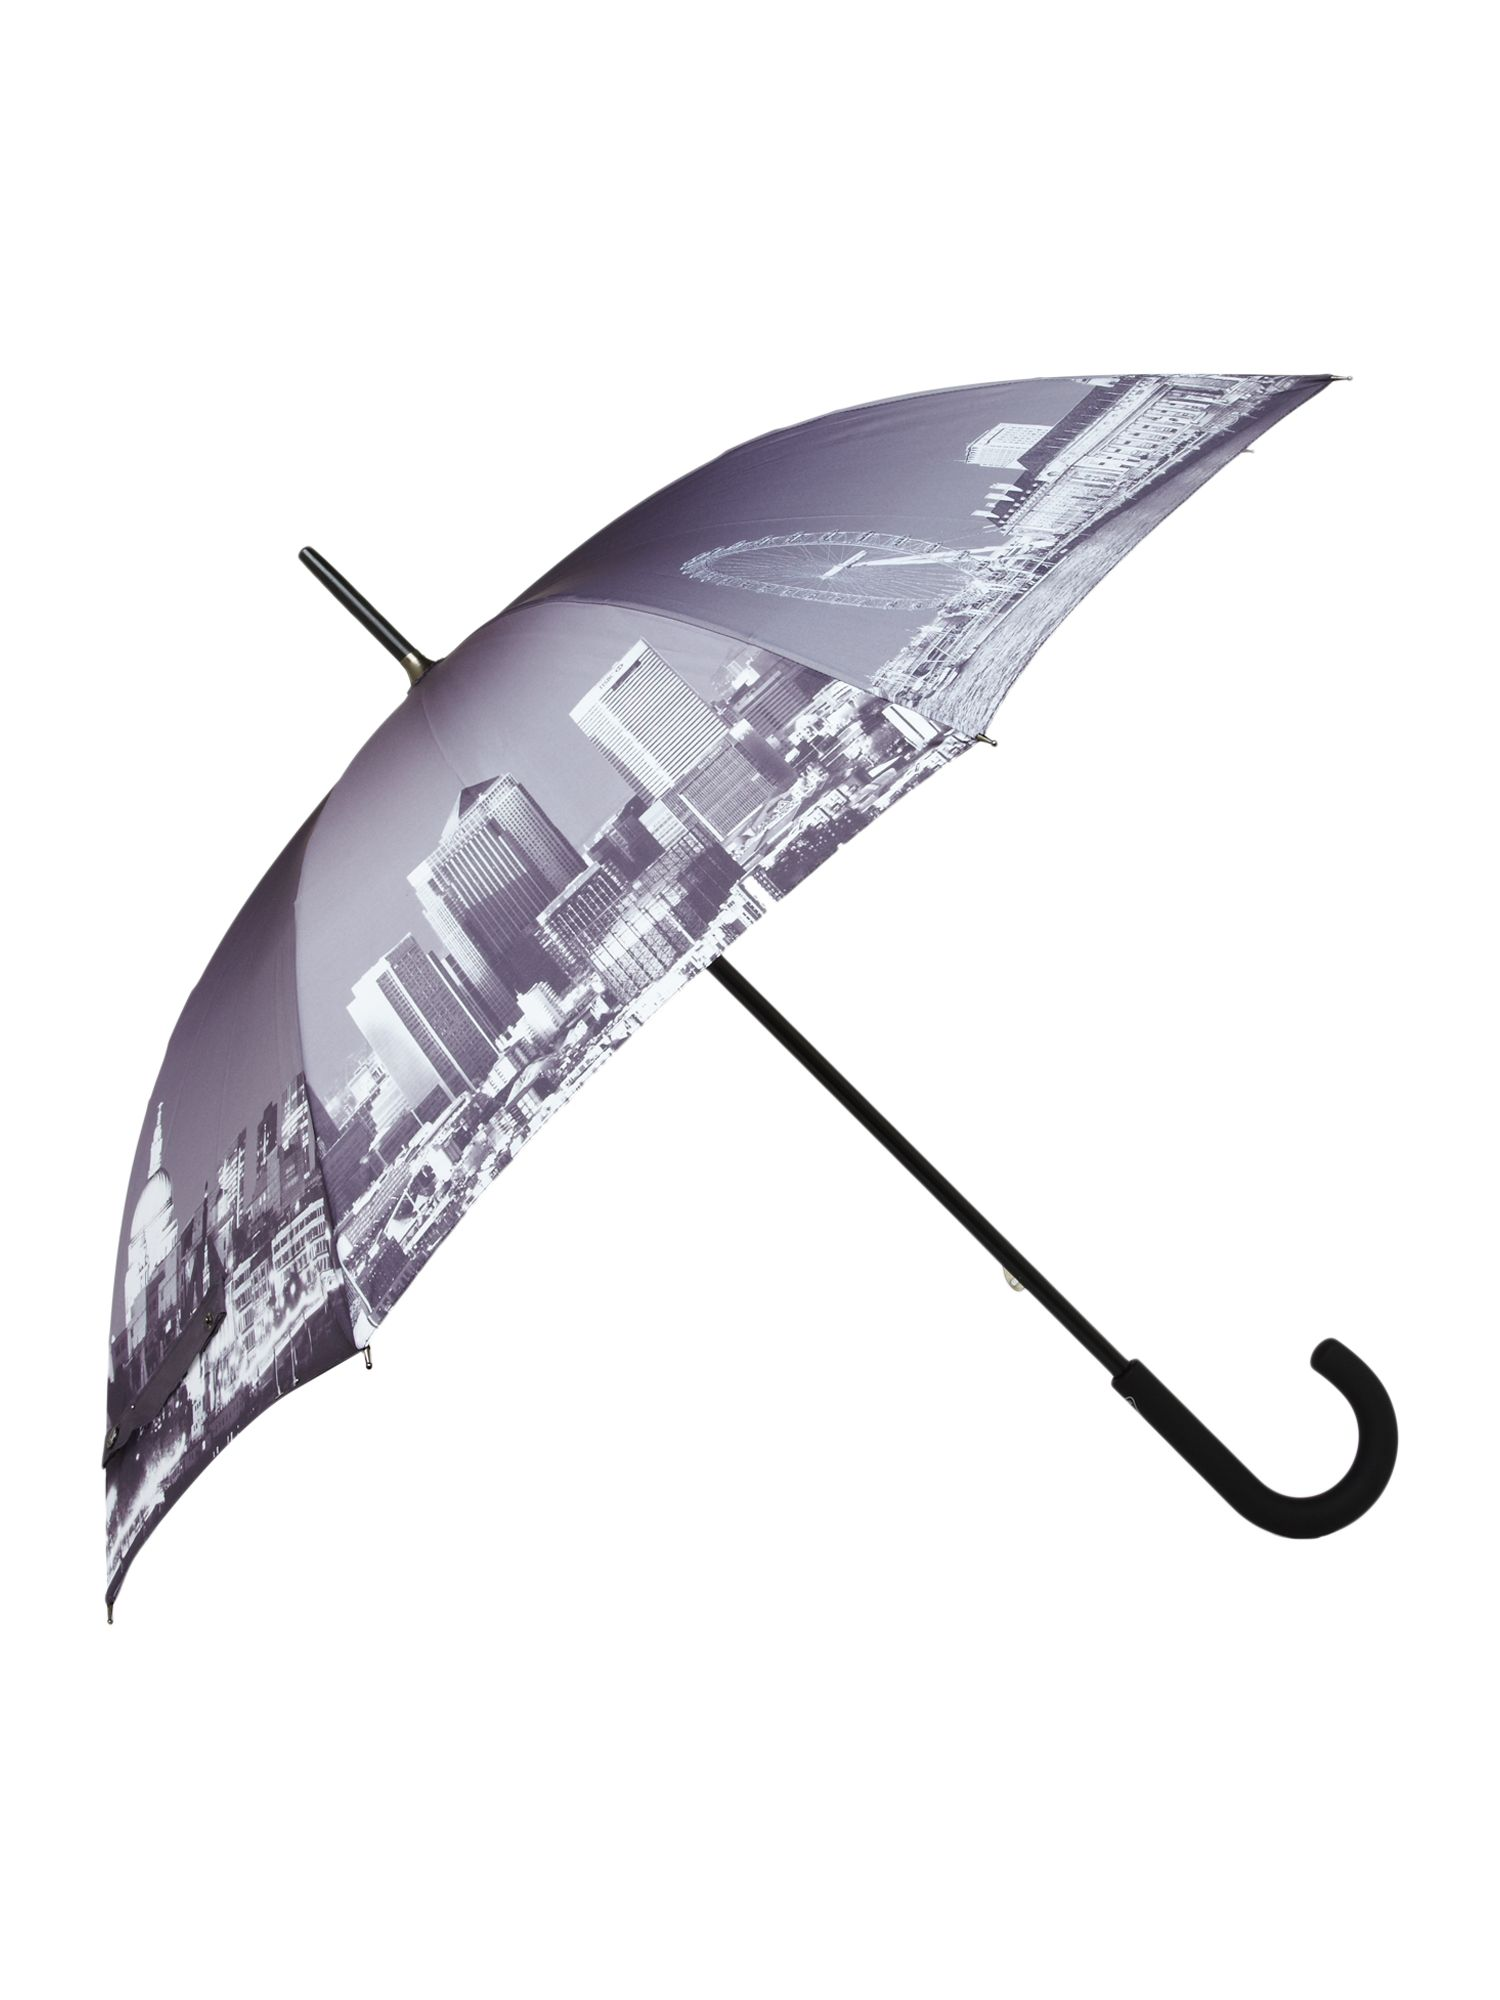 Cityscape London Kensington walker umbrella